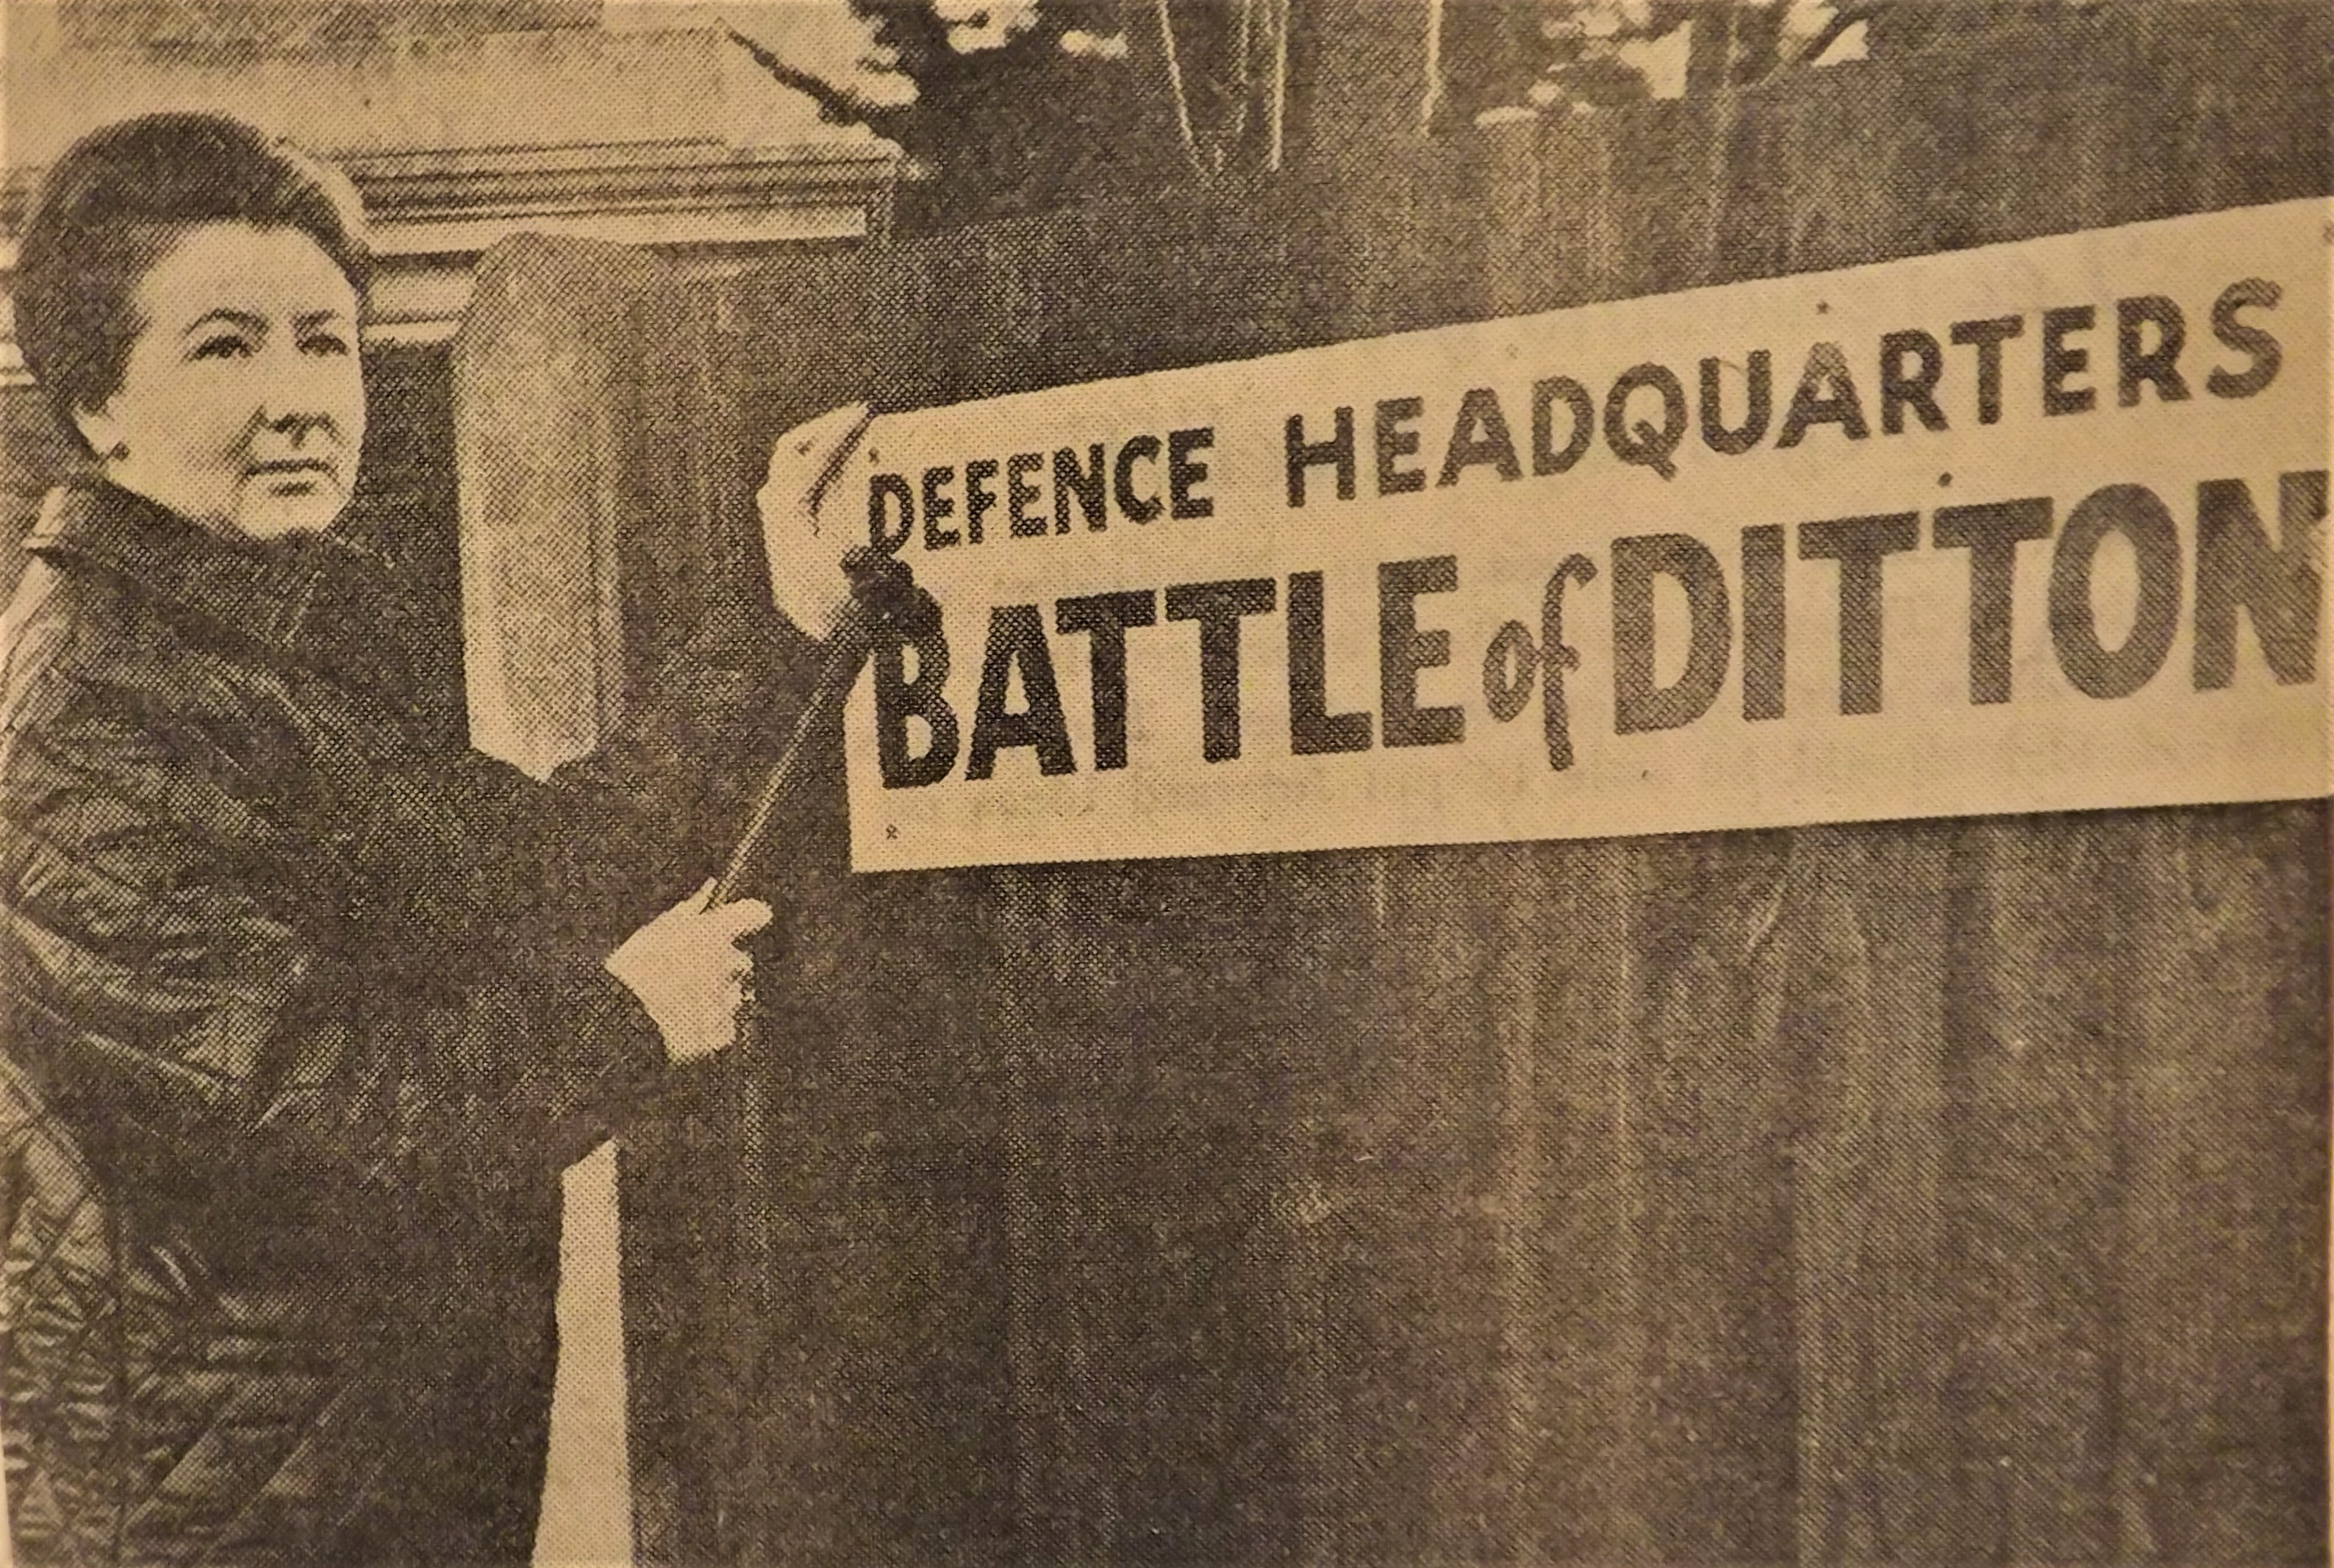 Photograph from a local newspaper reporting on the 'Battle of Ditton', where protestors set up a Battle Headquarters in order to plan their protest.